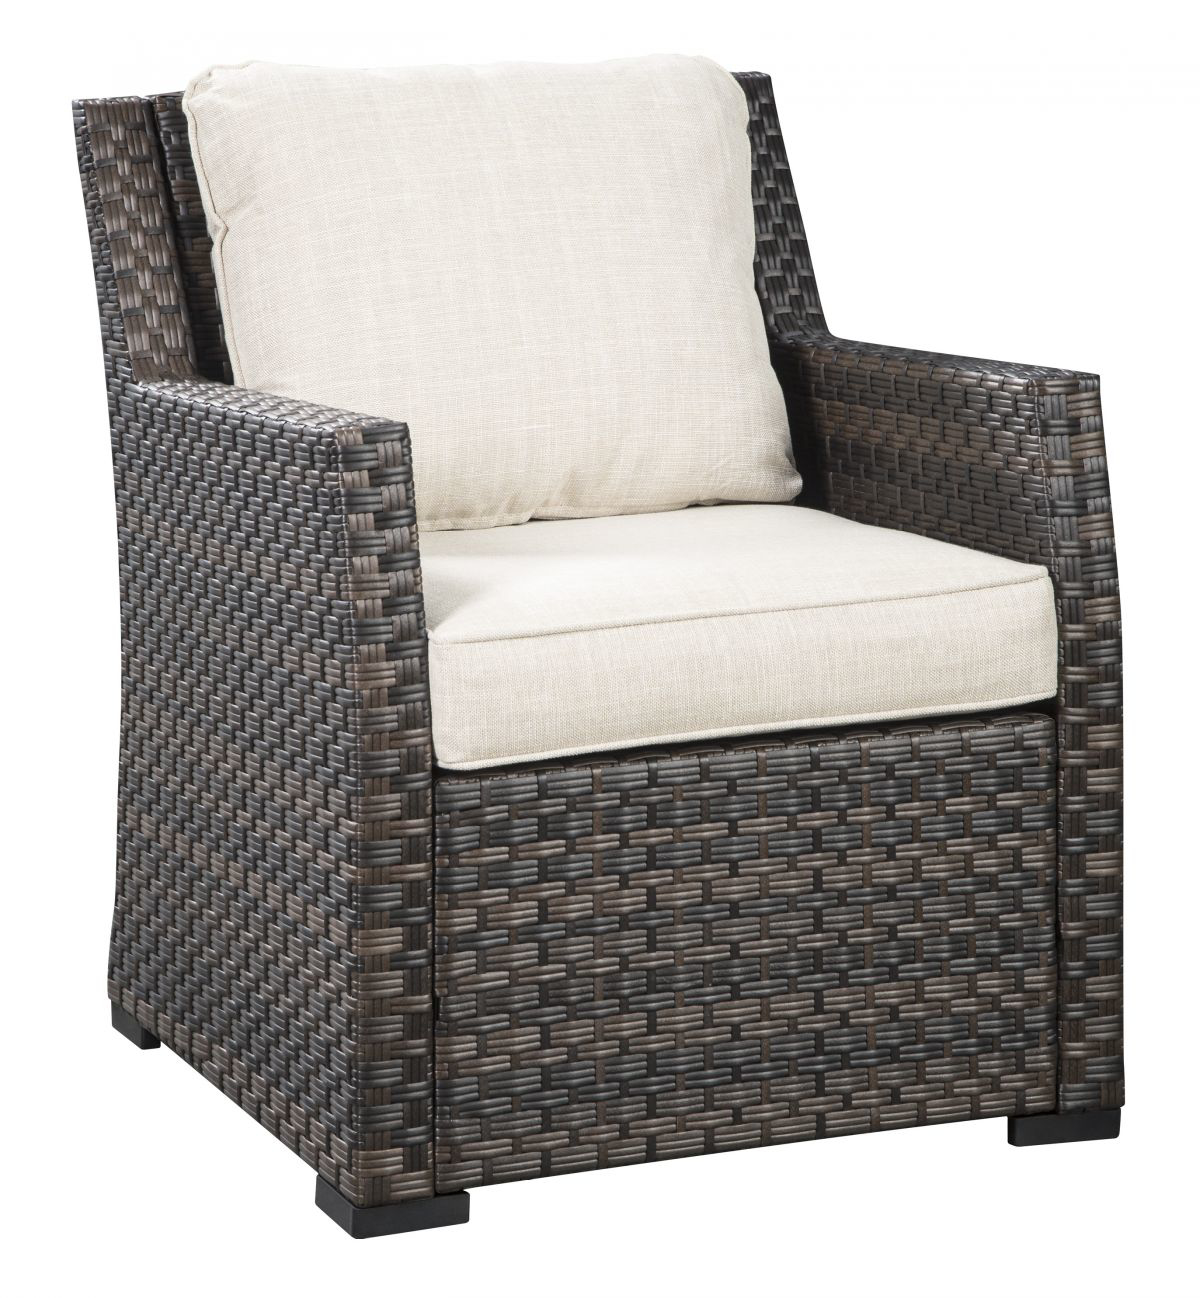 Picture of Easy Isle Patio Chair